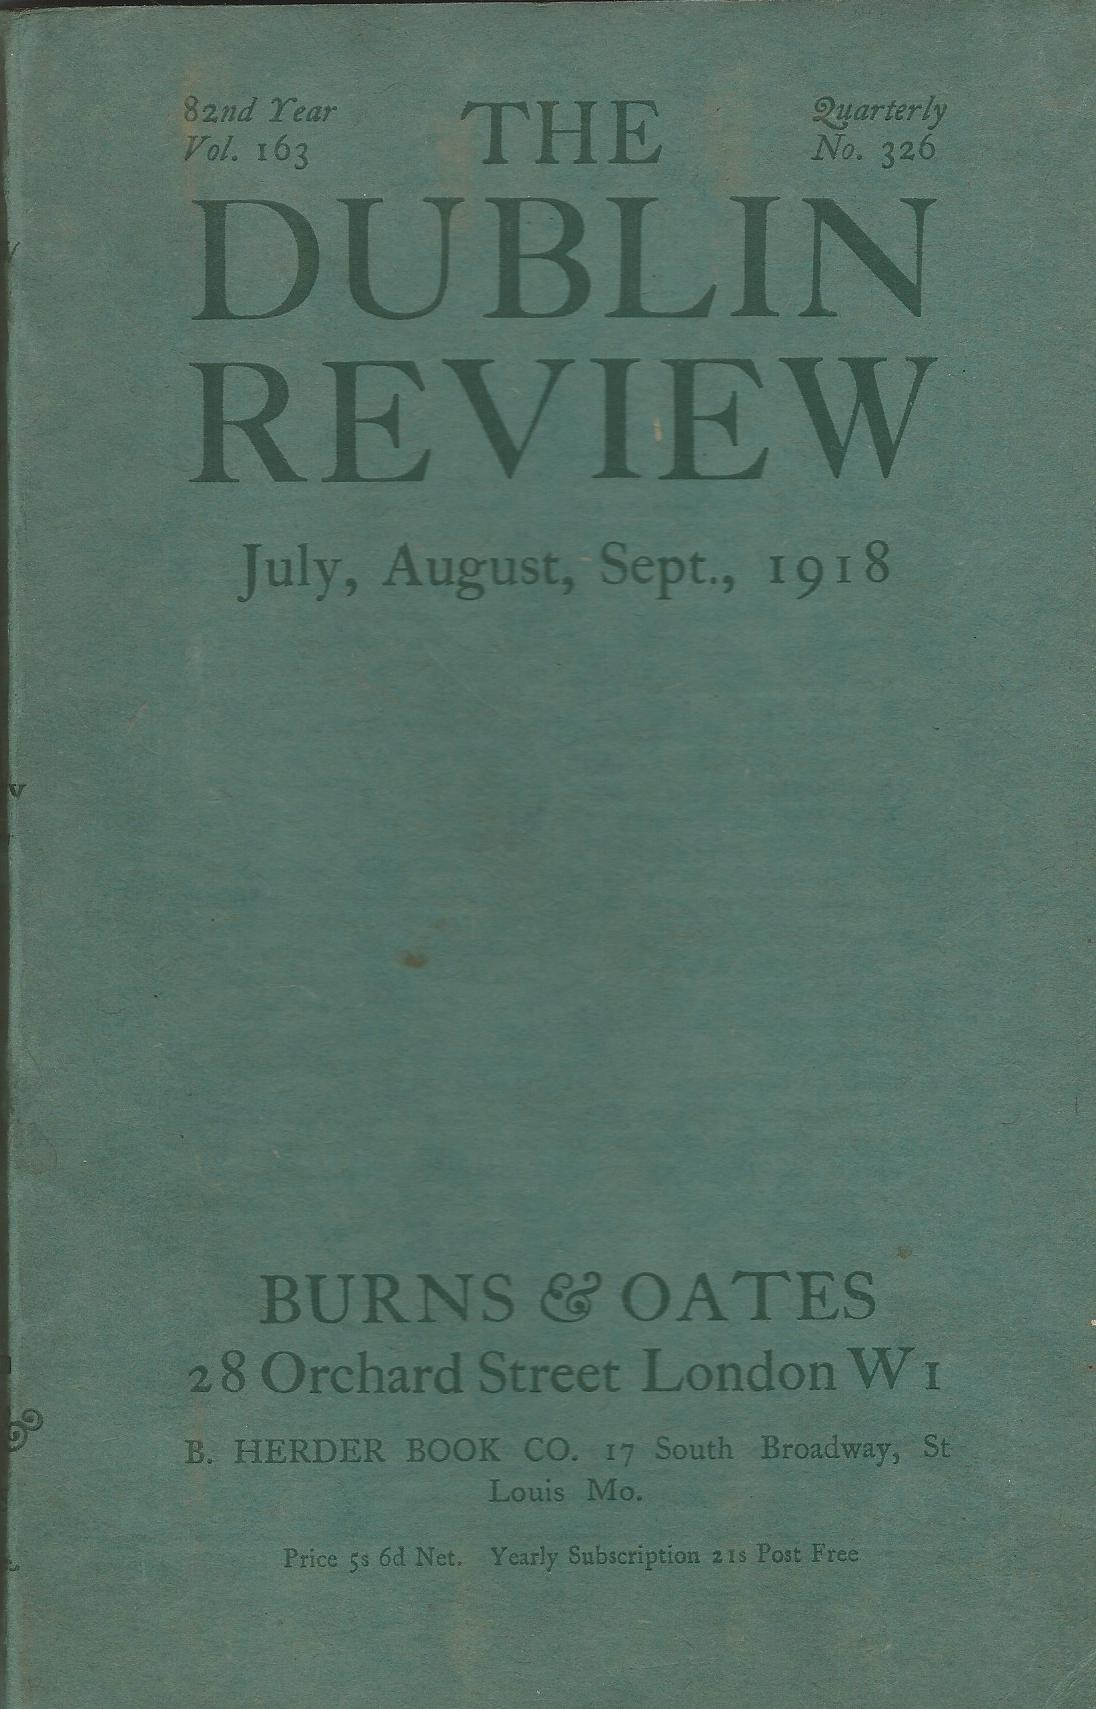 Image for The Dublin Review: July, August, September 1918. Vol.163, No.326.